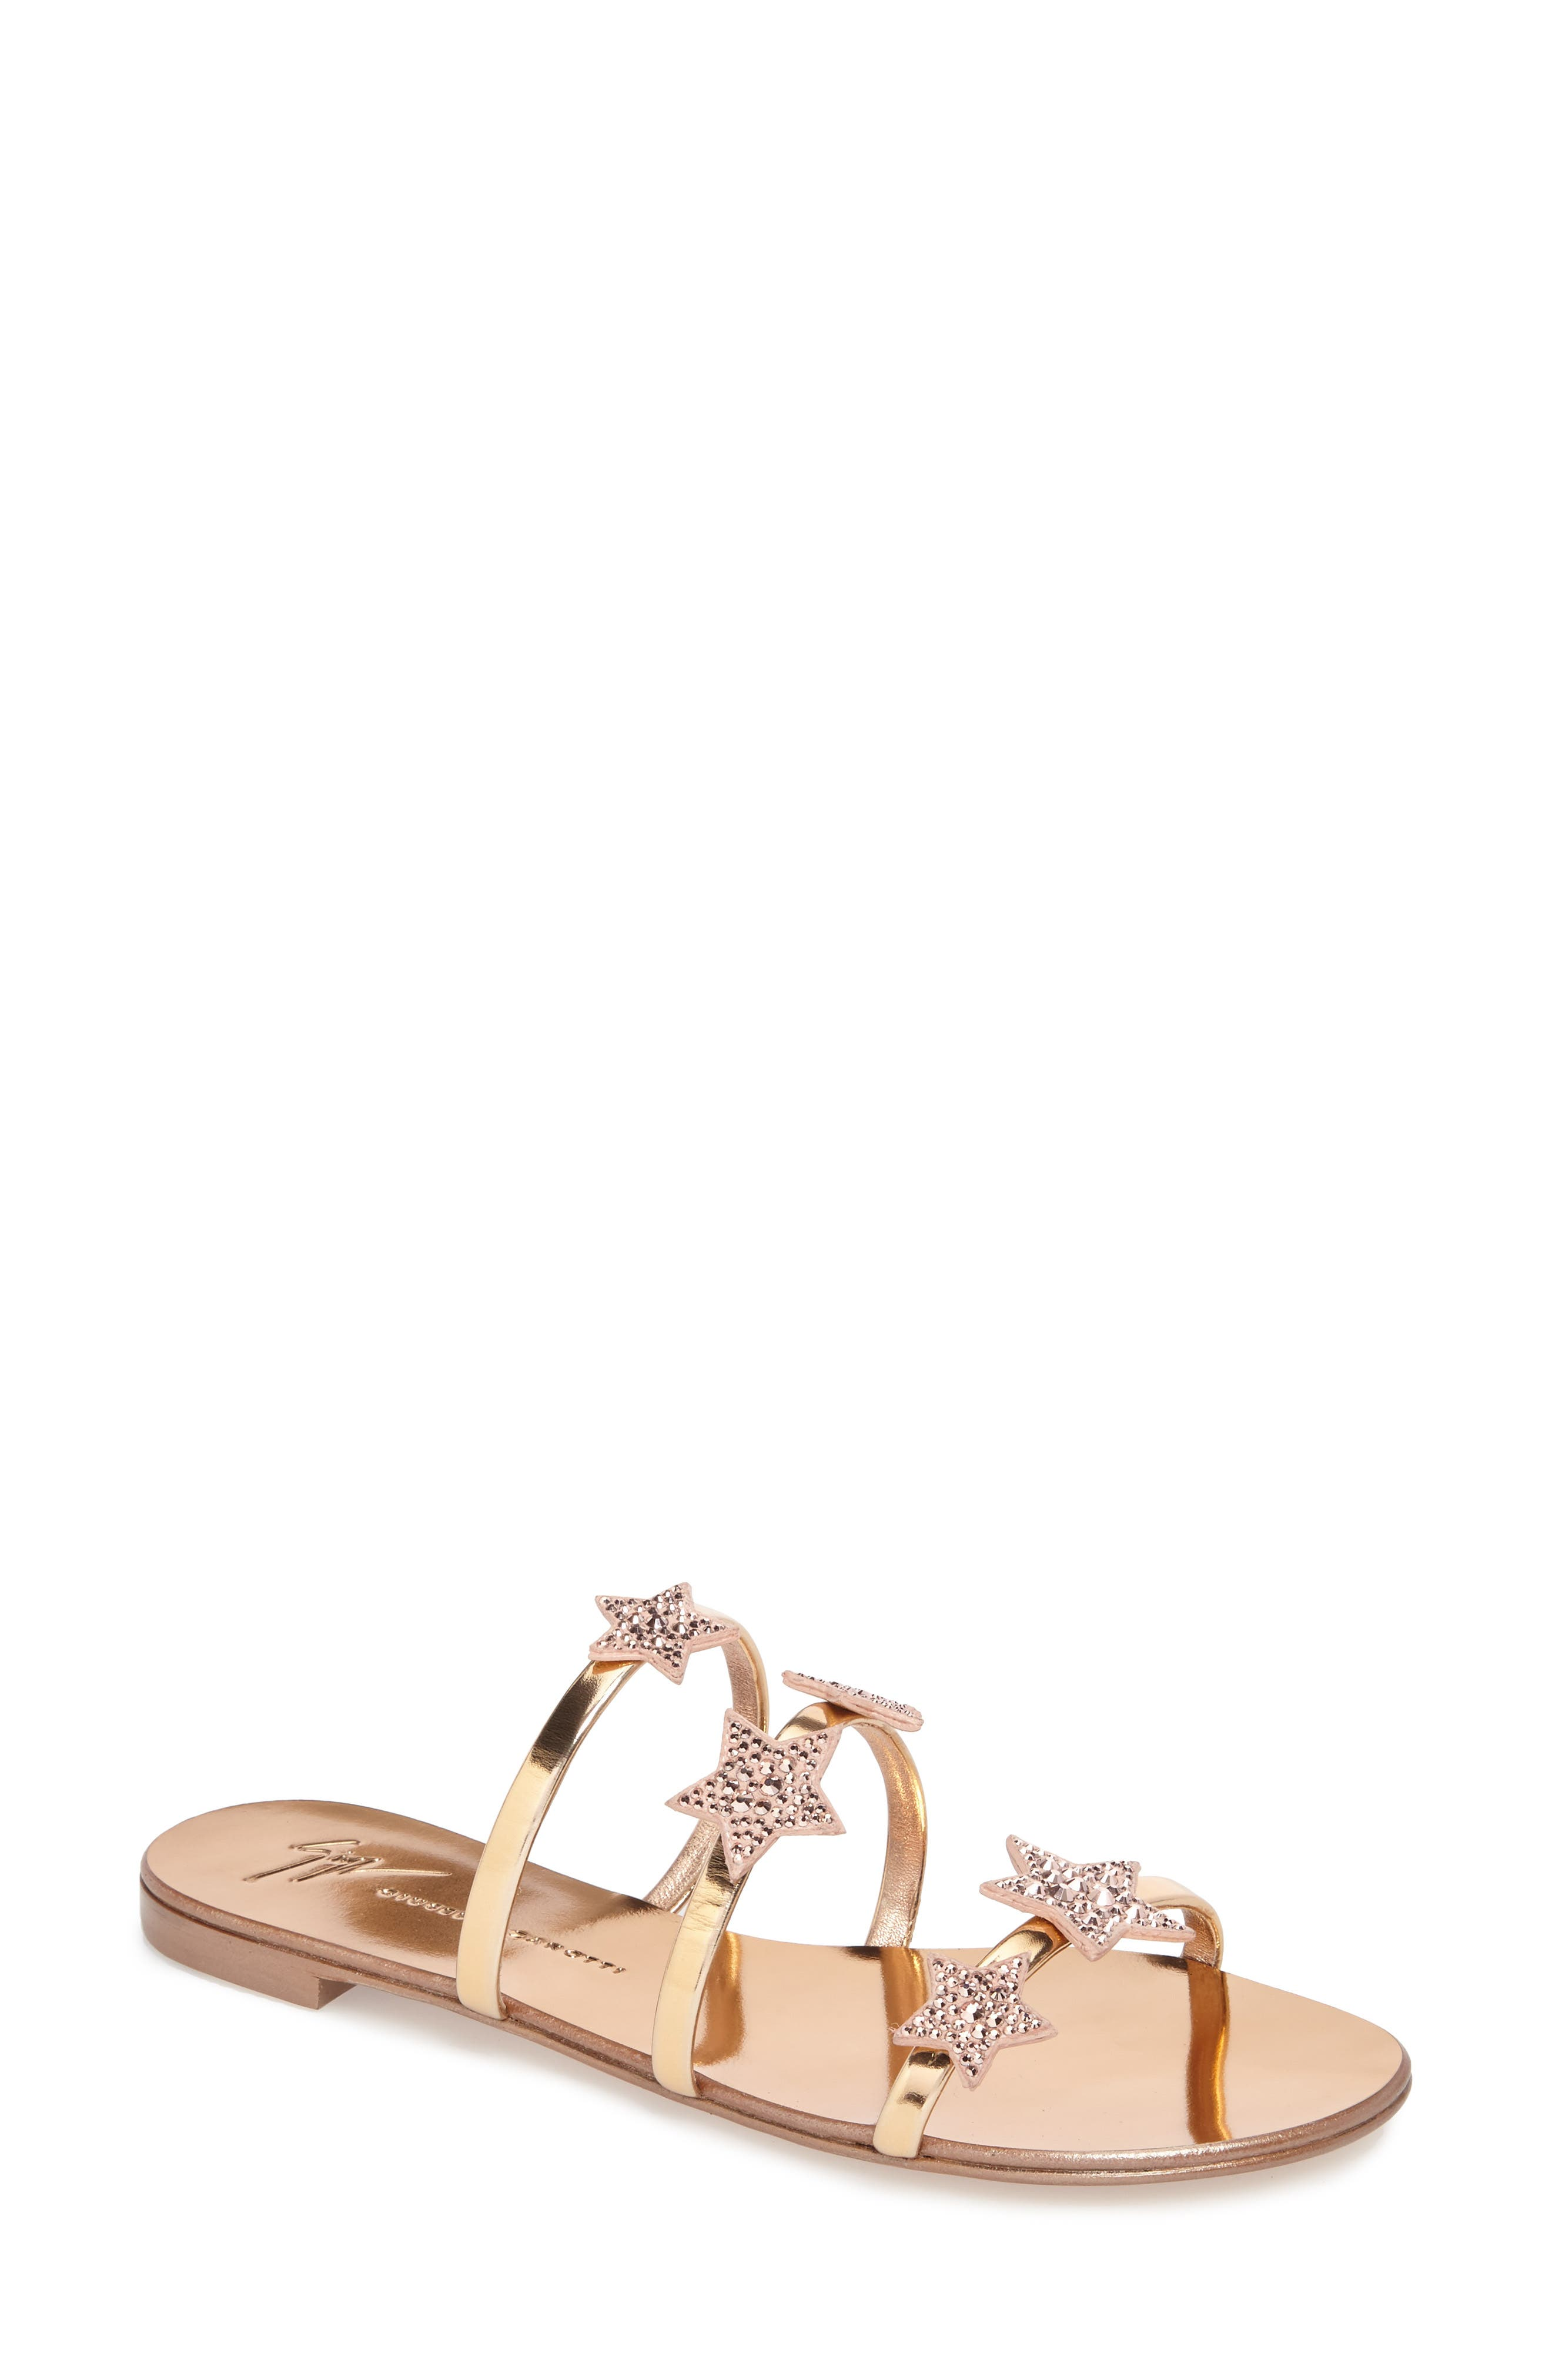 Nuvoroll Star Sandal,                         Main,                         color, Rose Gold